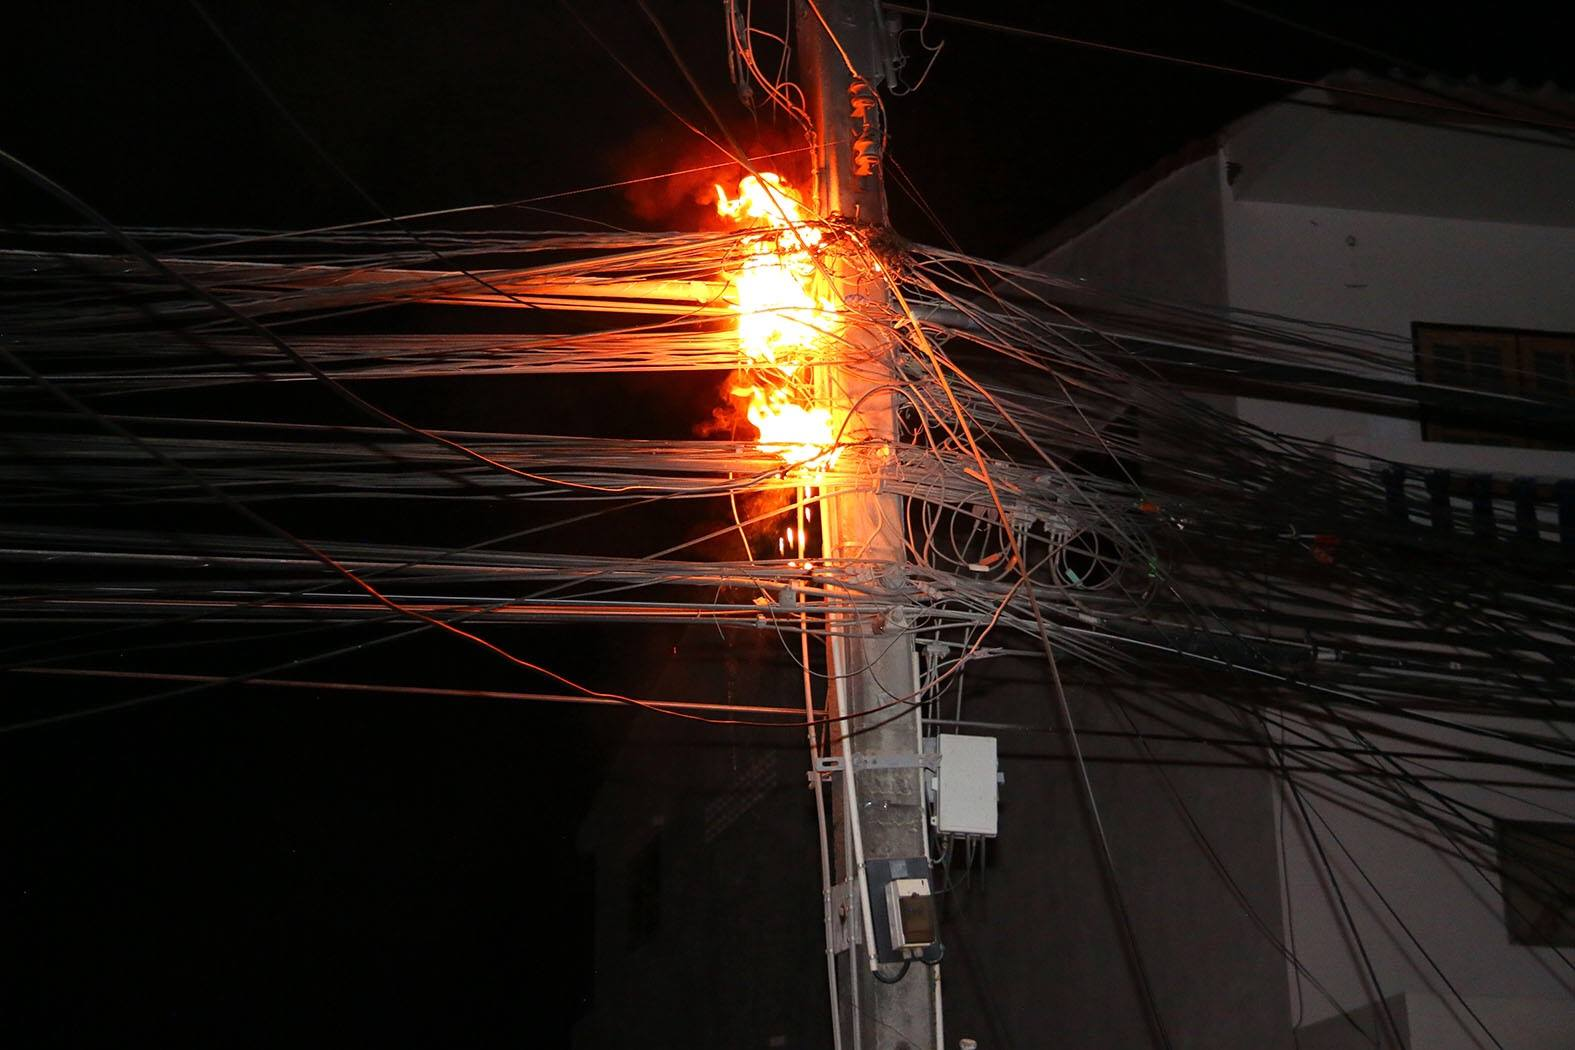 Fire from the explosion of the power cables